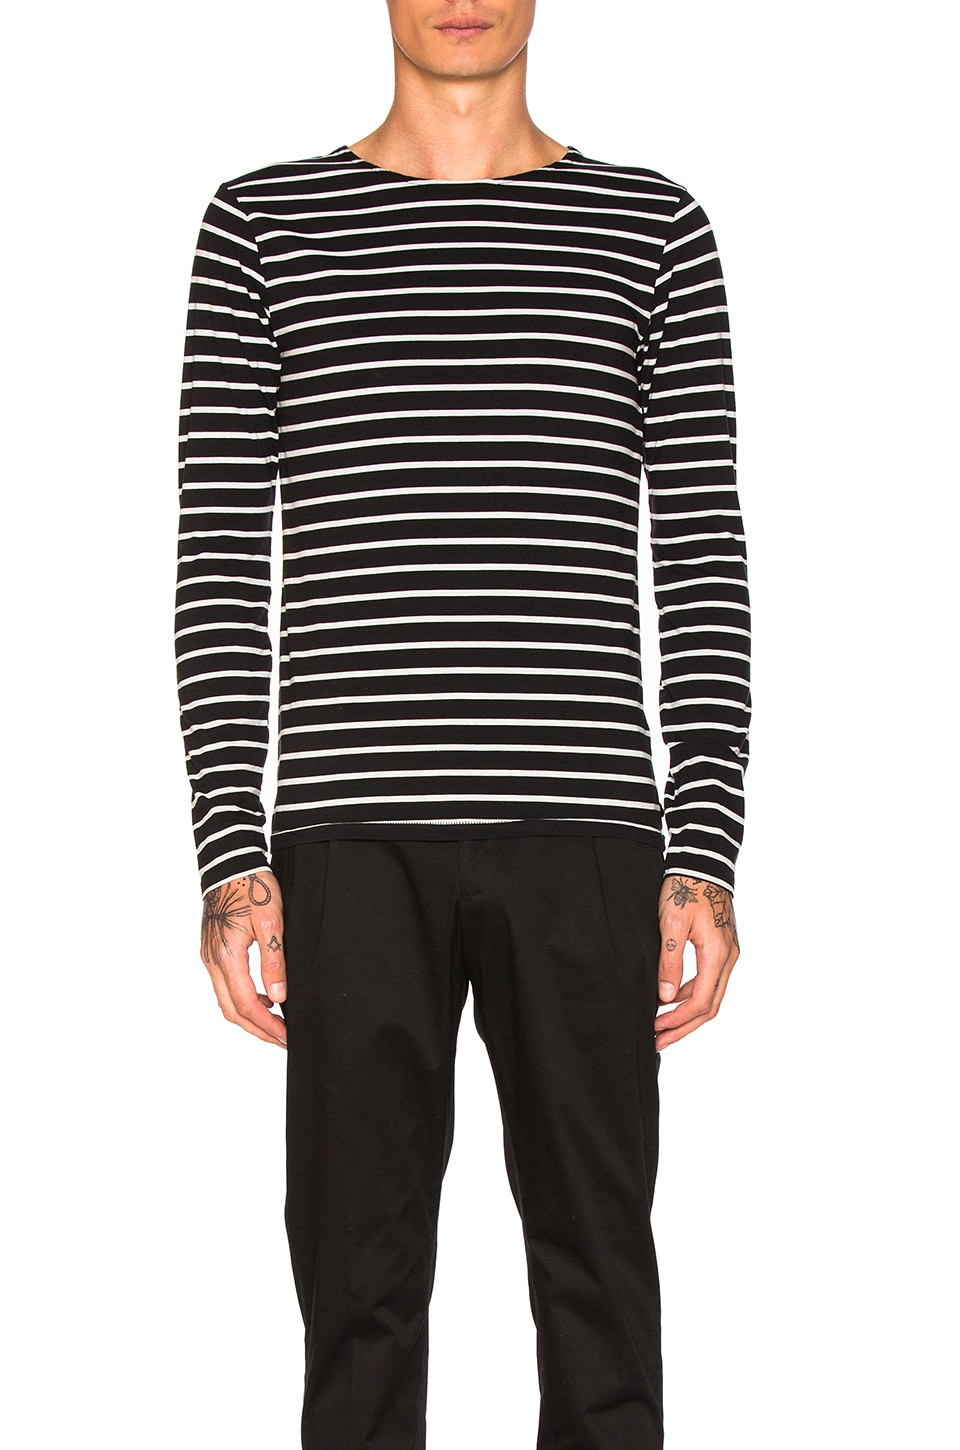 Photo of Classic Long Sleeve Tee by Scotch & Soda men clothes